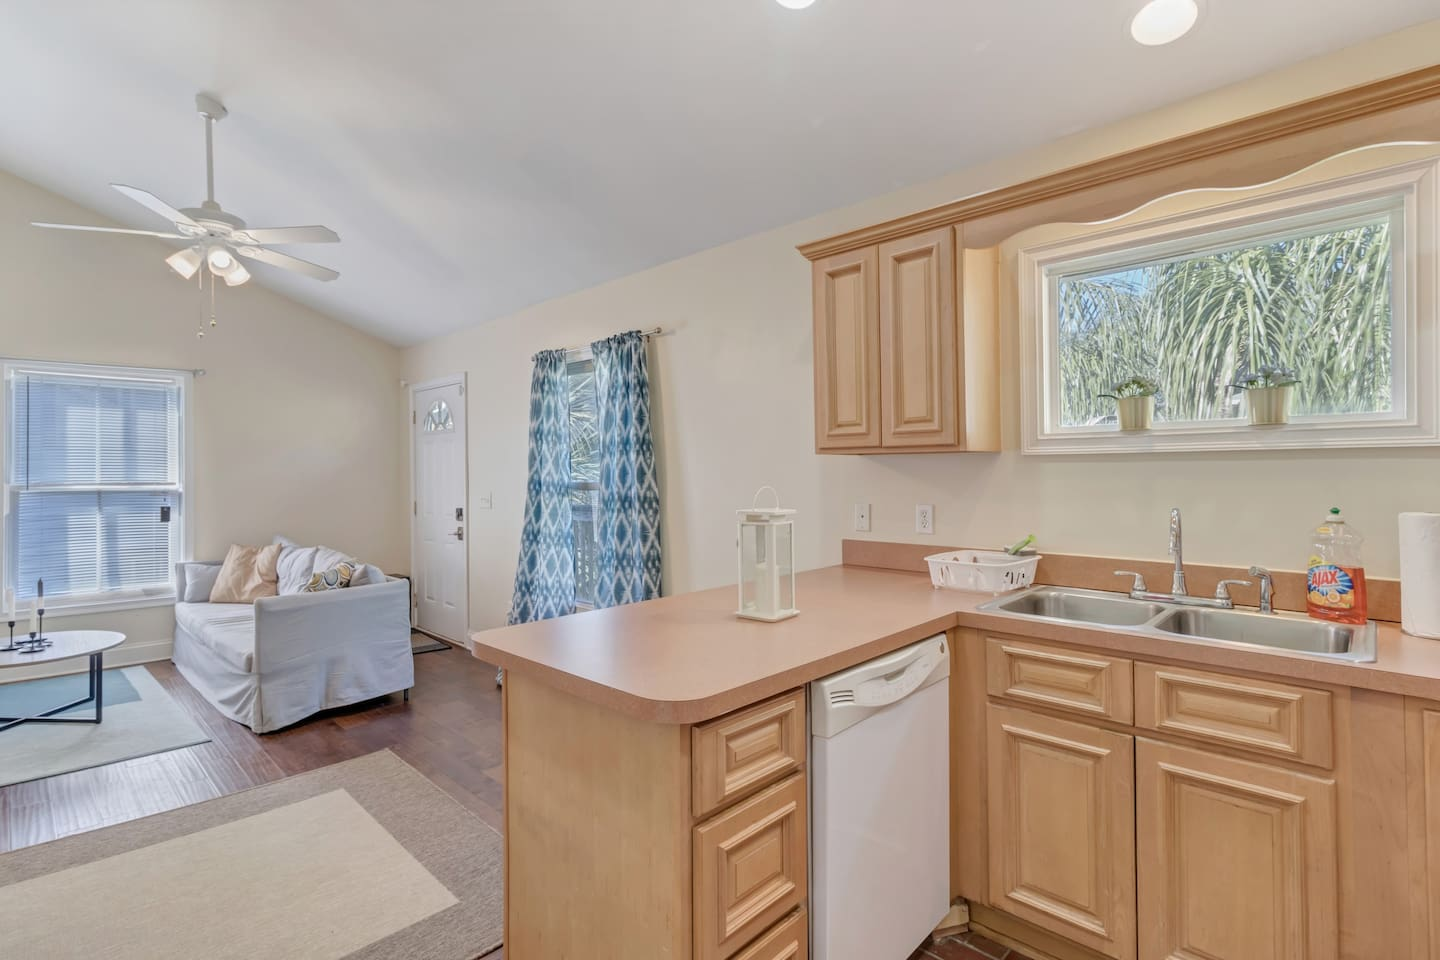 Large kitchen includes dishwasher, double sided sink with disposal, and lots of counter space